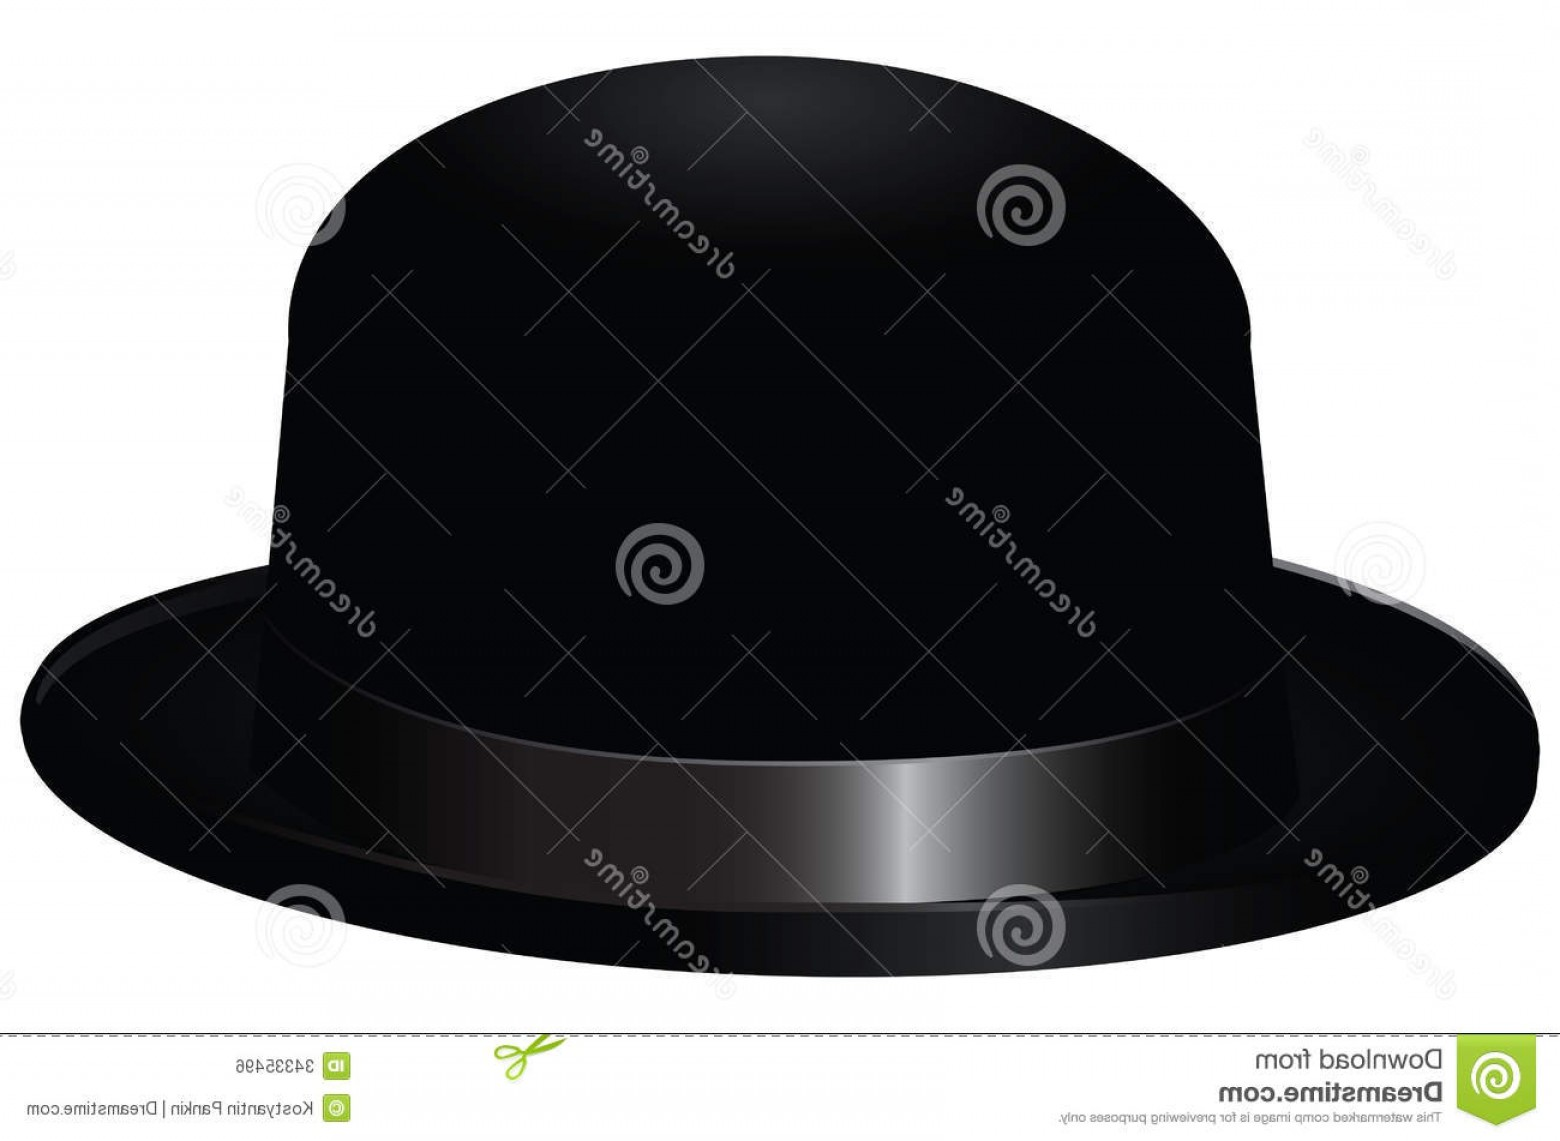 Bowler Hat Vector: Royalty Free Stock Image Black Bowler Hat Also Known As Bob Vector Illustration Image